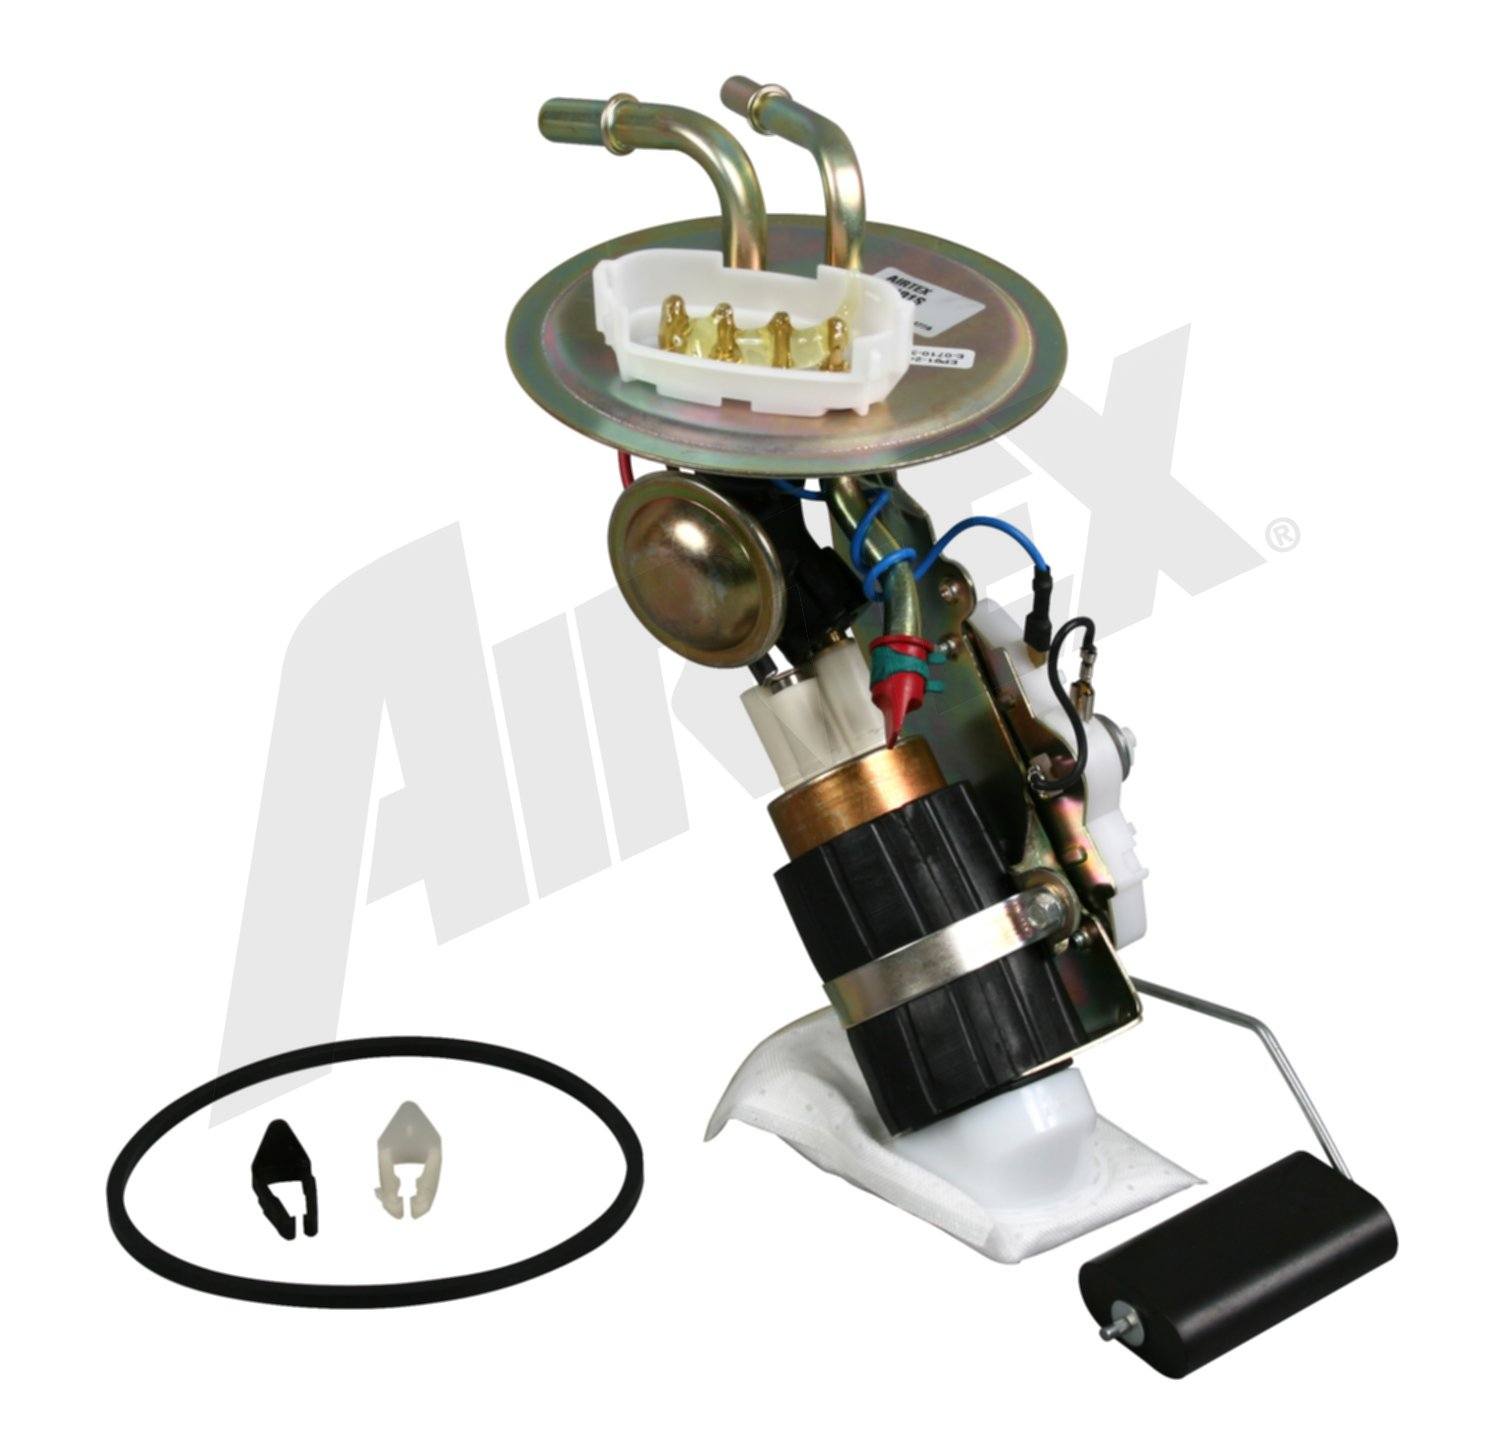 Image of Airtex Fuel Pumps E2101S Fuel Pump and Sender Assembly Fits 1988-1994 Ford Tempo